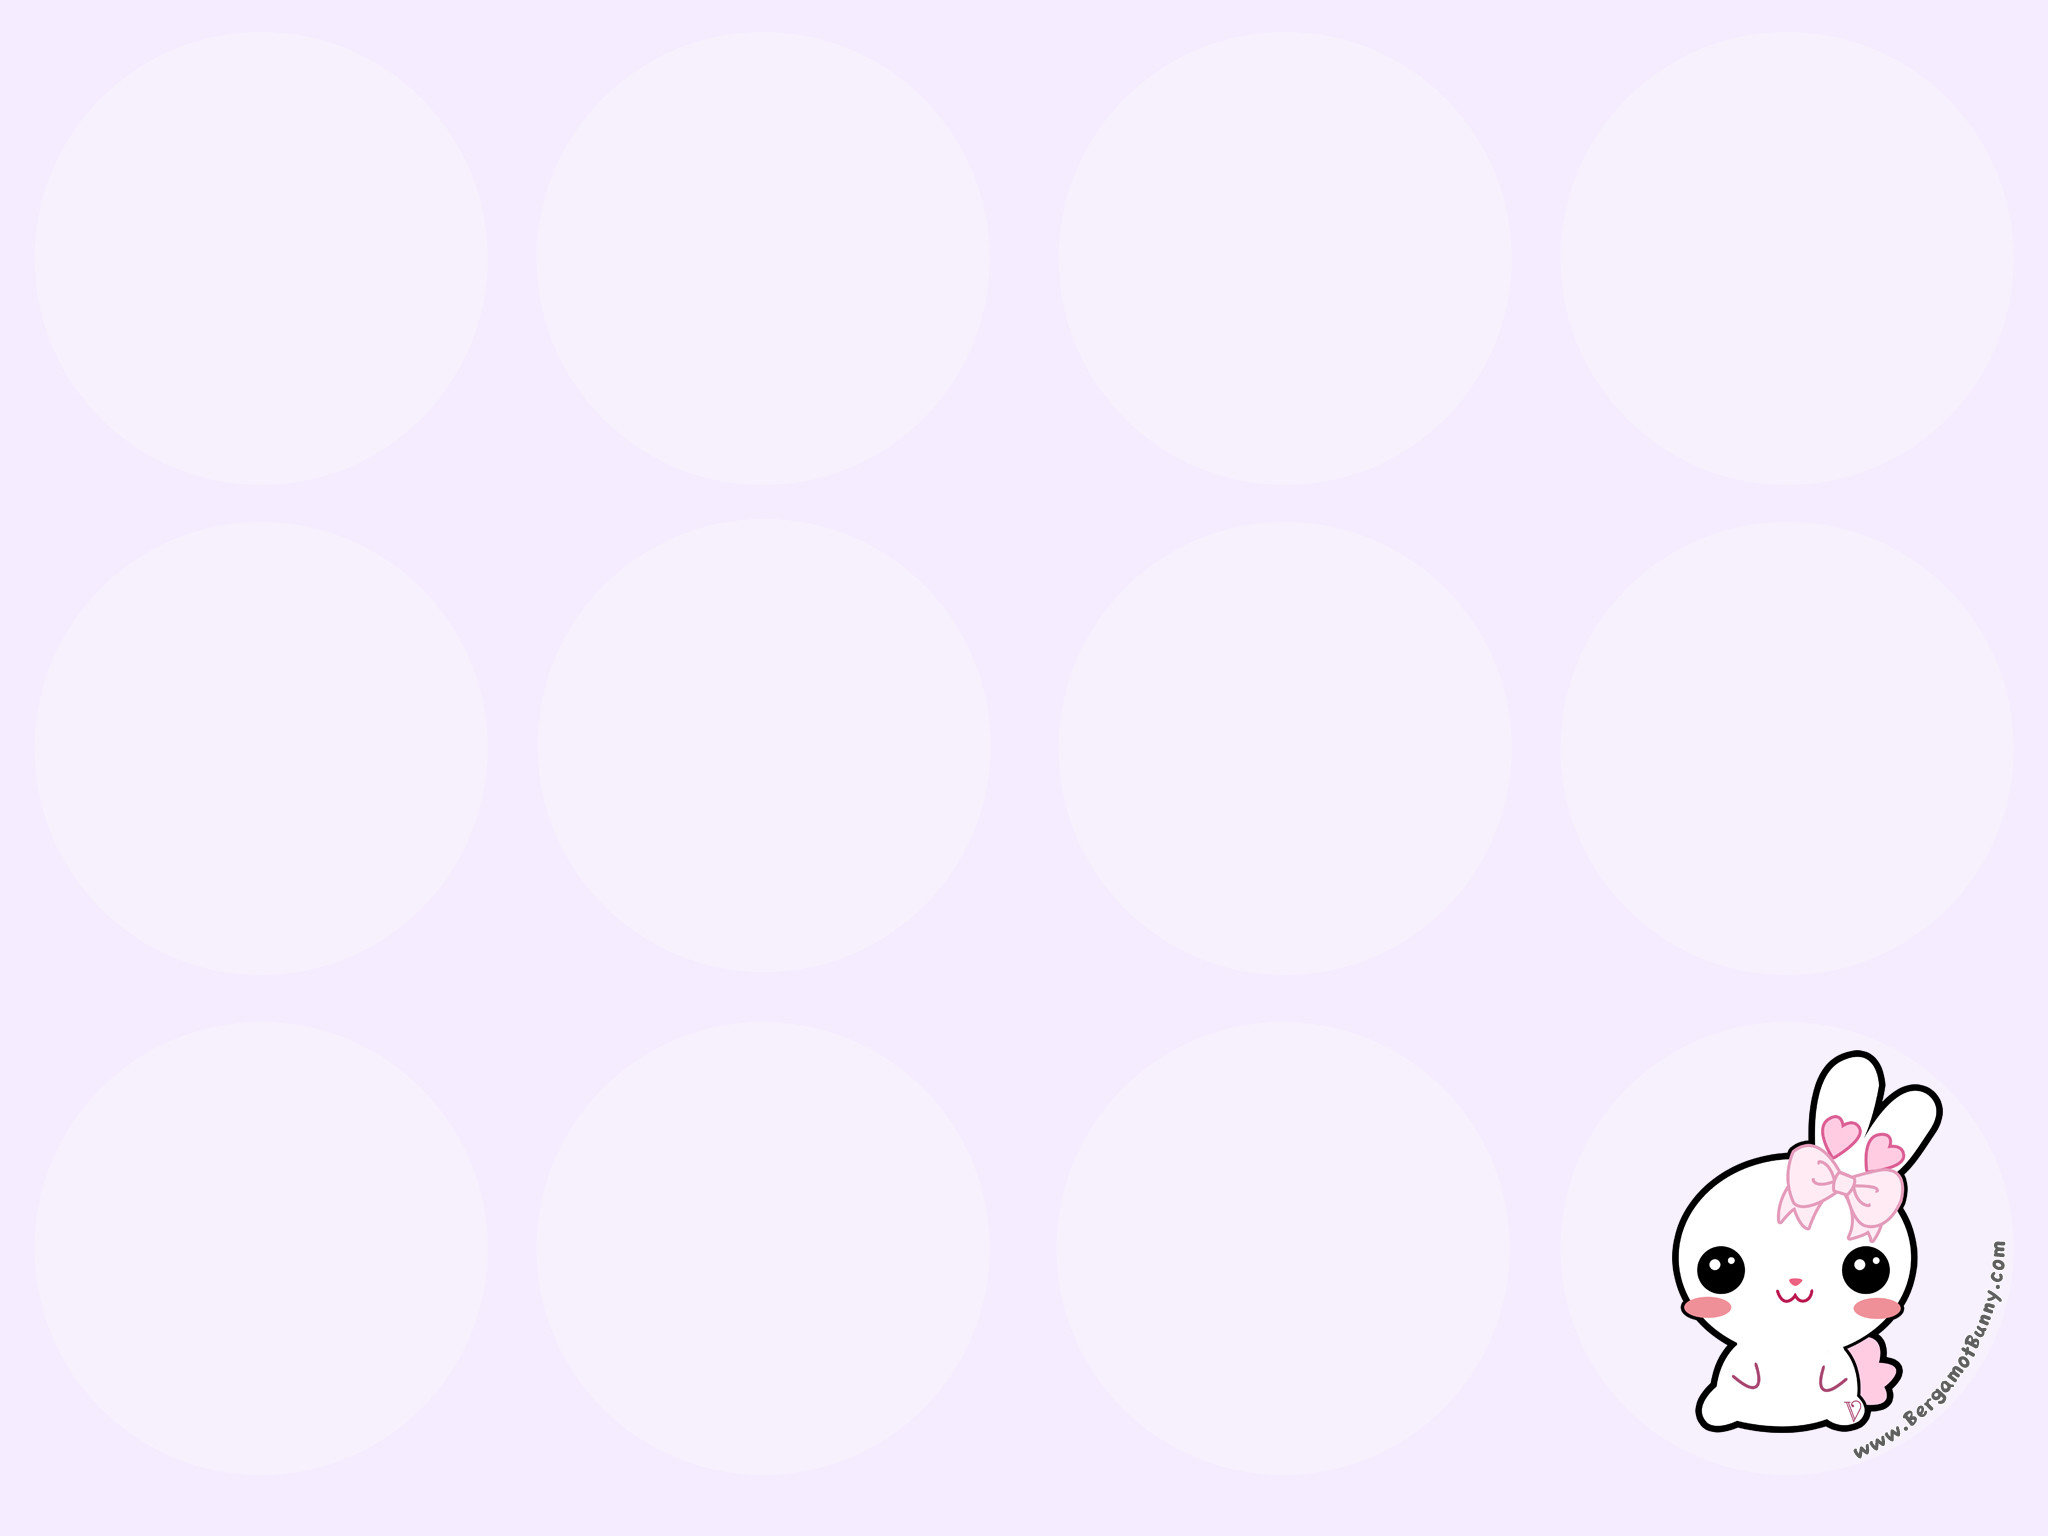 Cute background 37 images 1920x1200 pin ground clipart cute background 2 voltagebd Choice Image